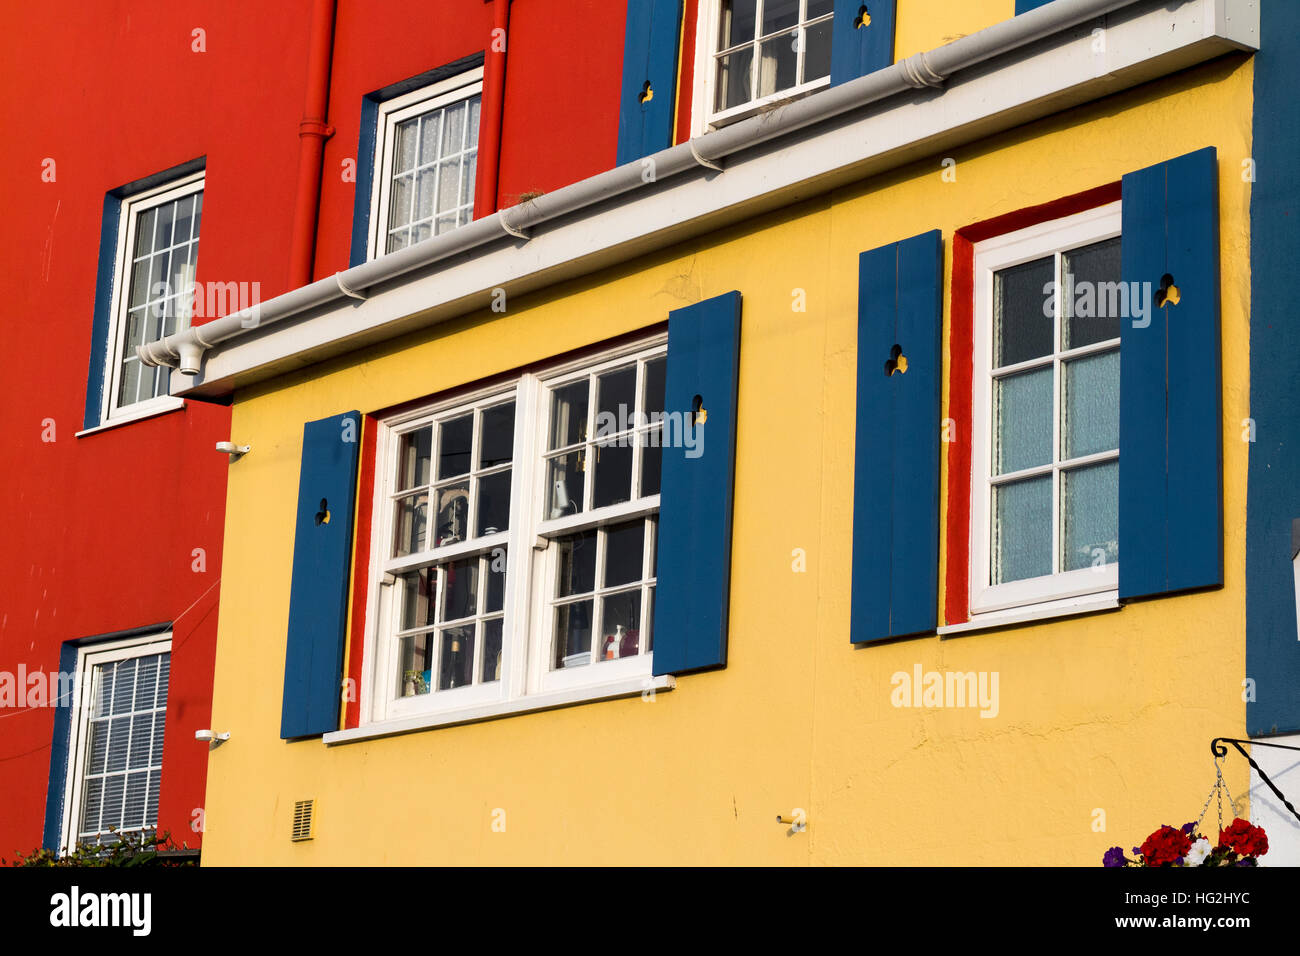 Bright Colored Walls, Windows, and Shutters on Buildings in Stock ...